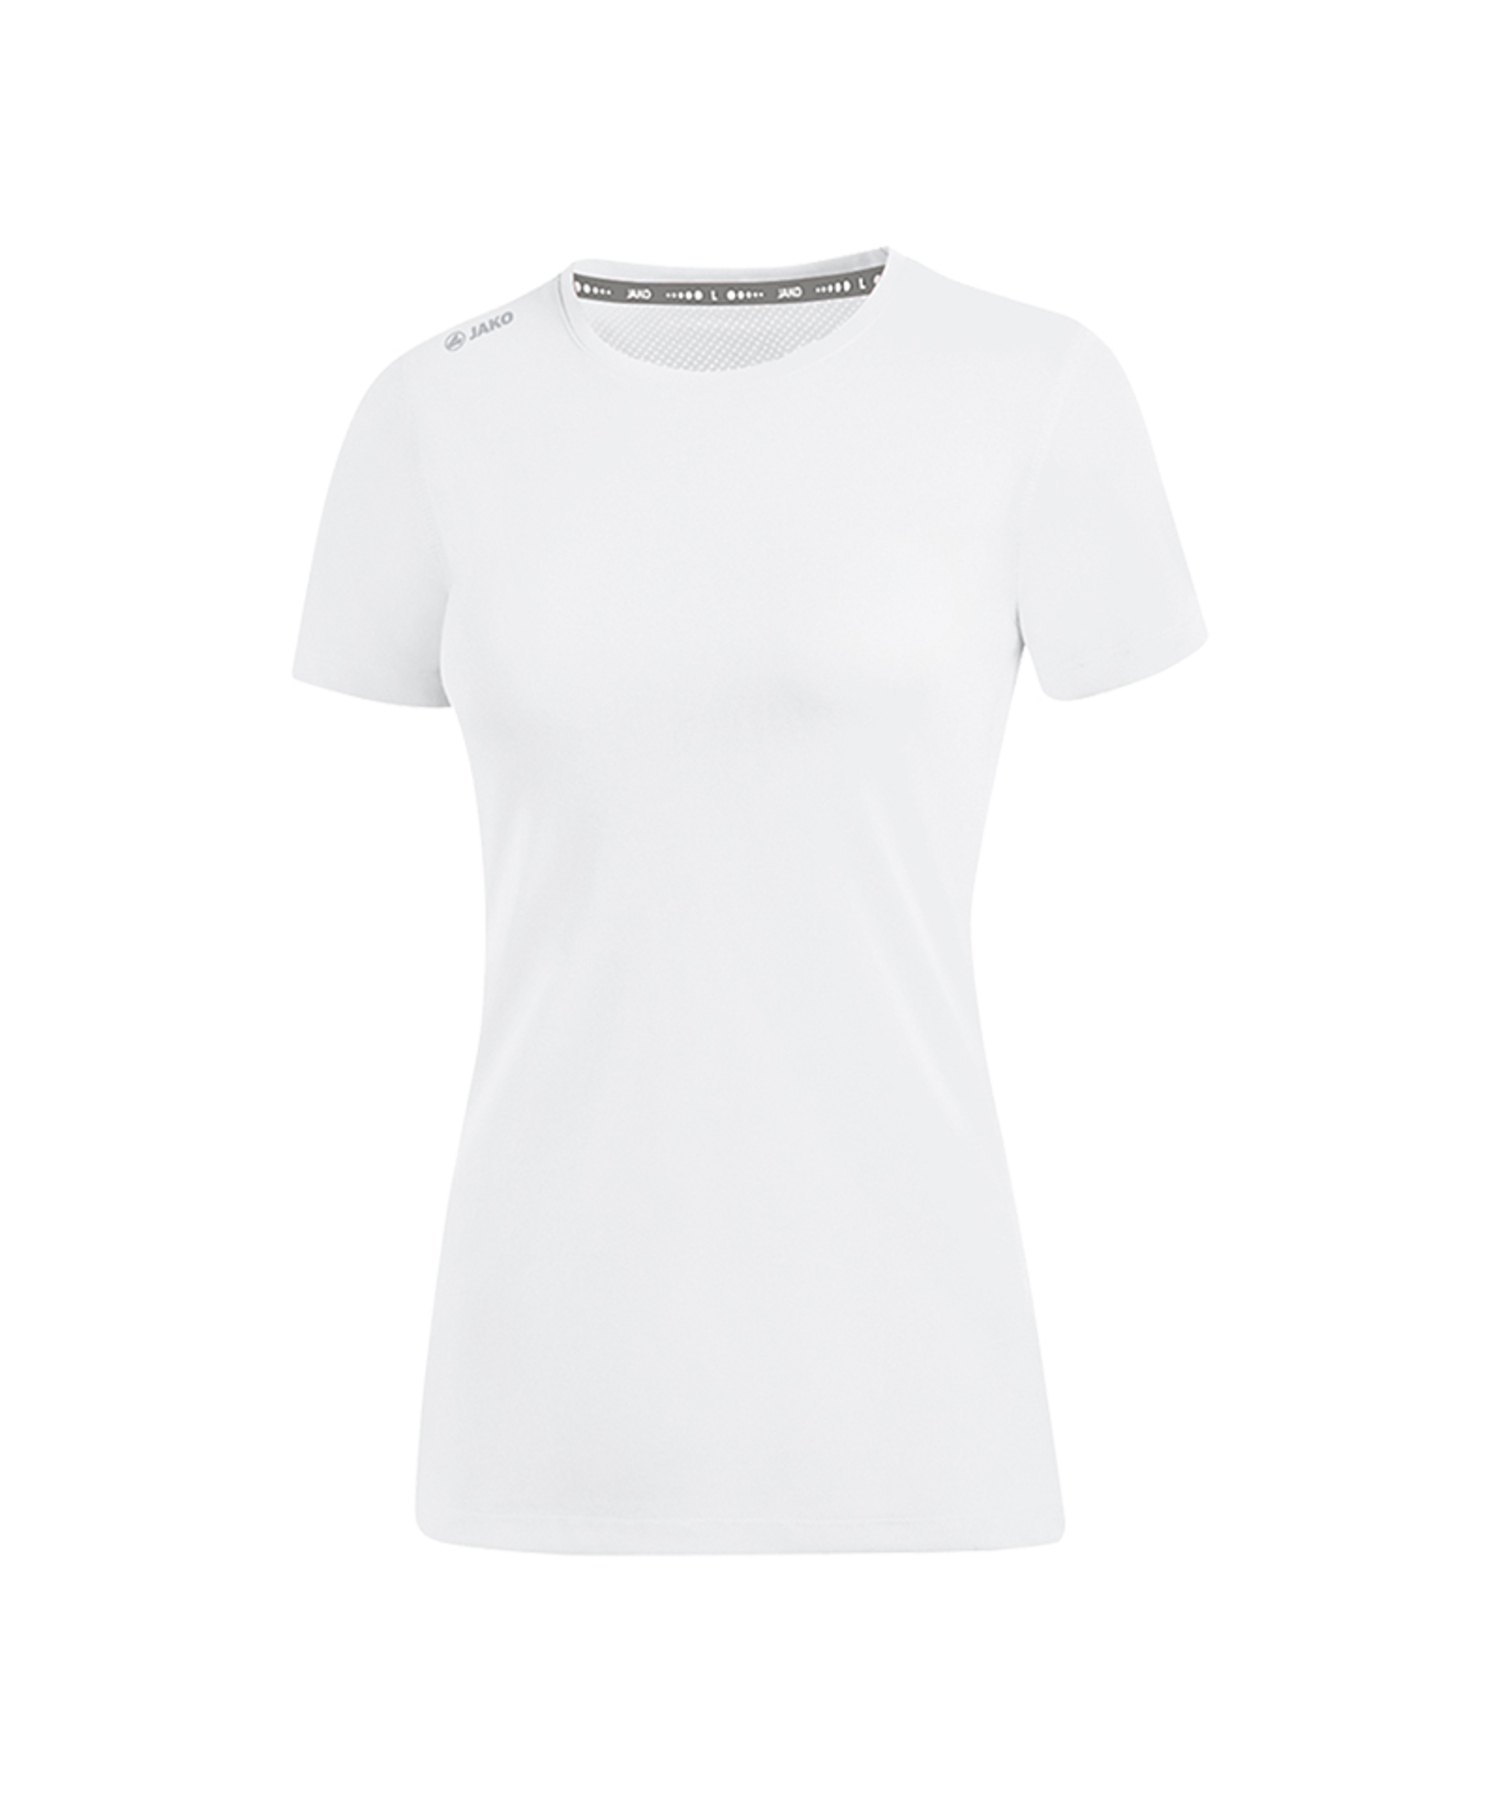 Jako Run 2.0 T-Shirt Running Damen Weiss F00 - Weiss